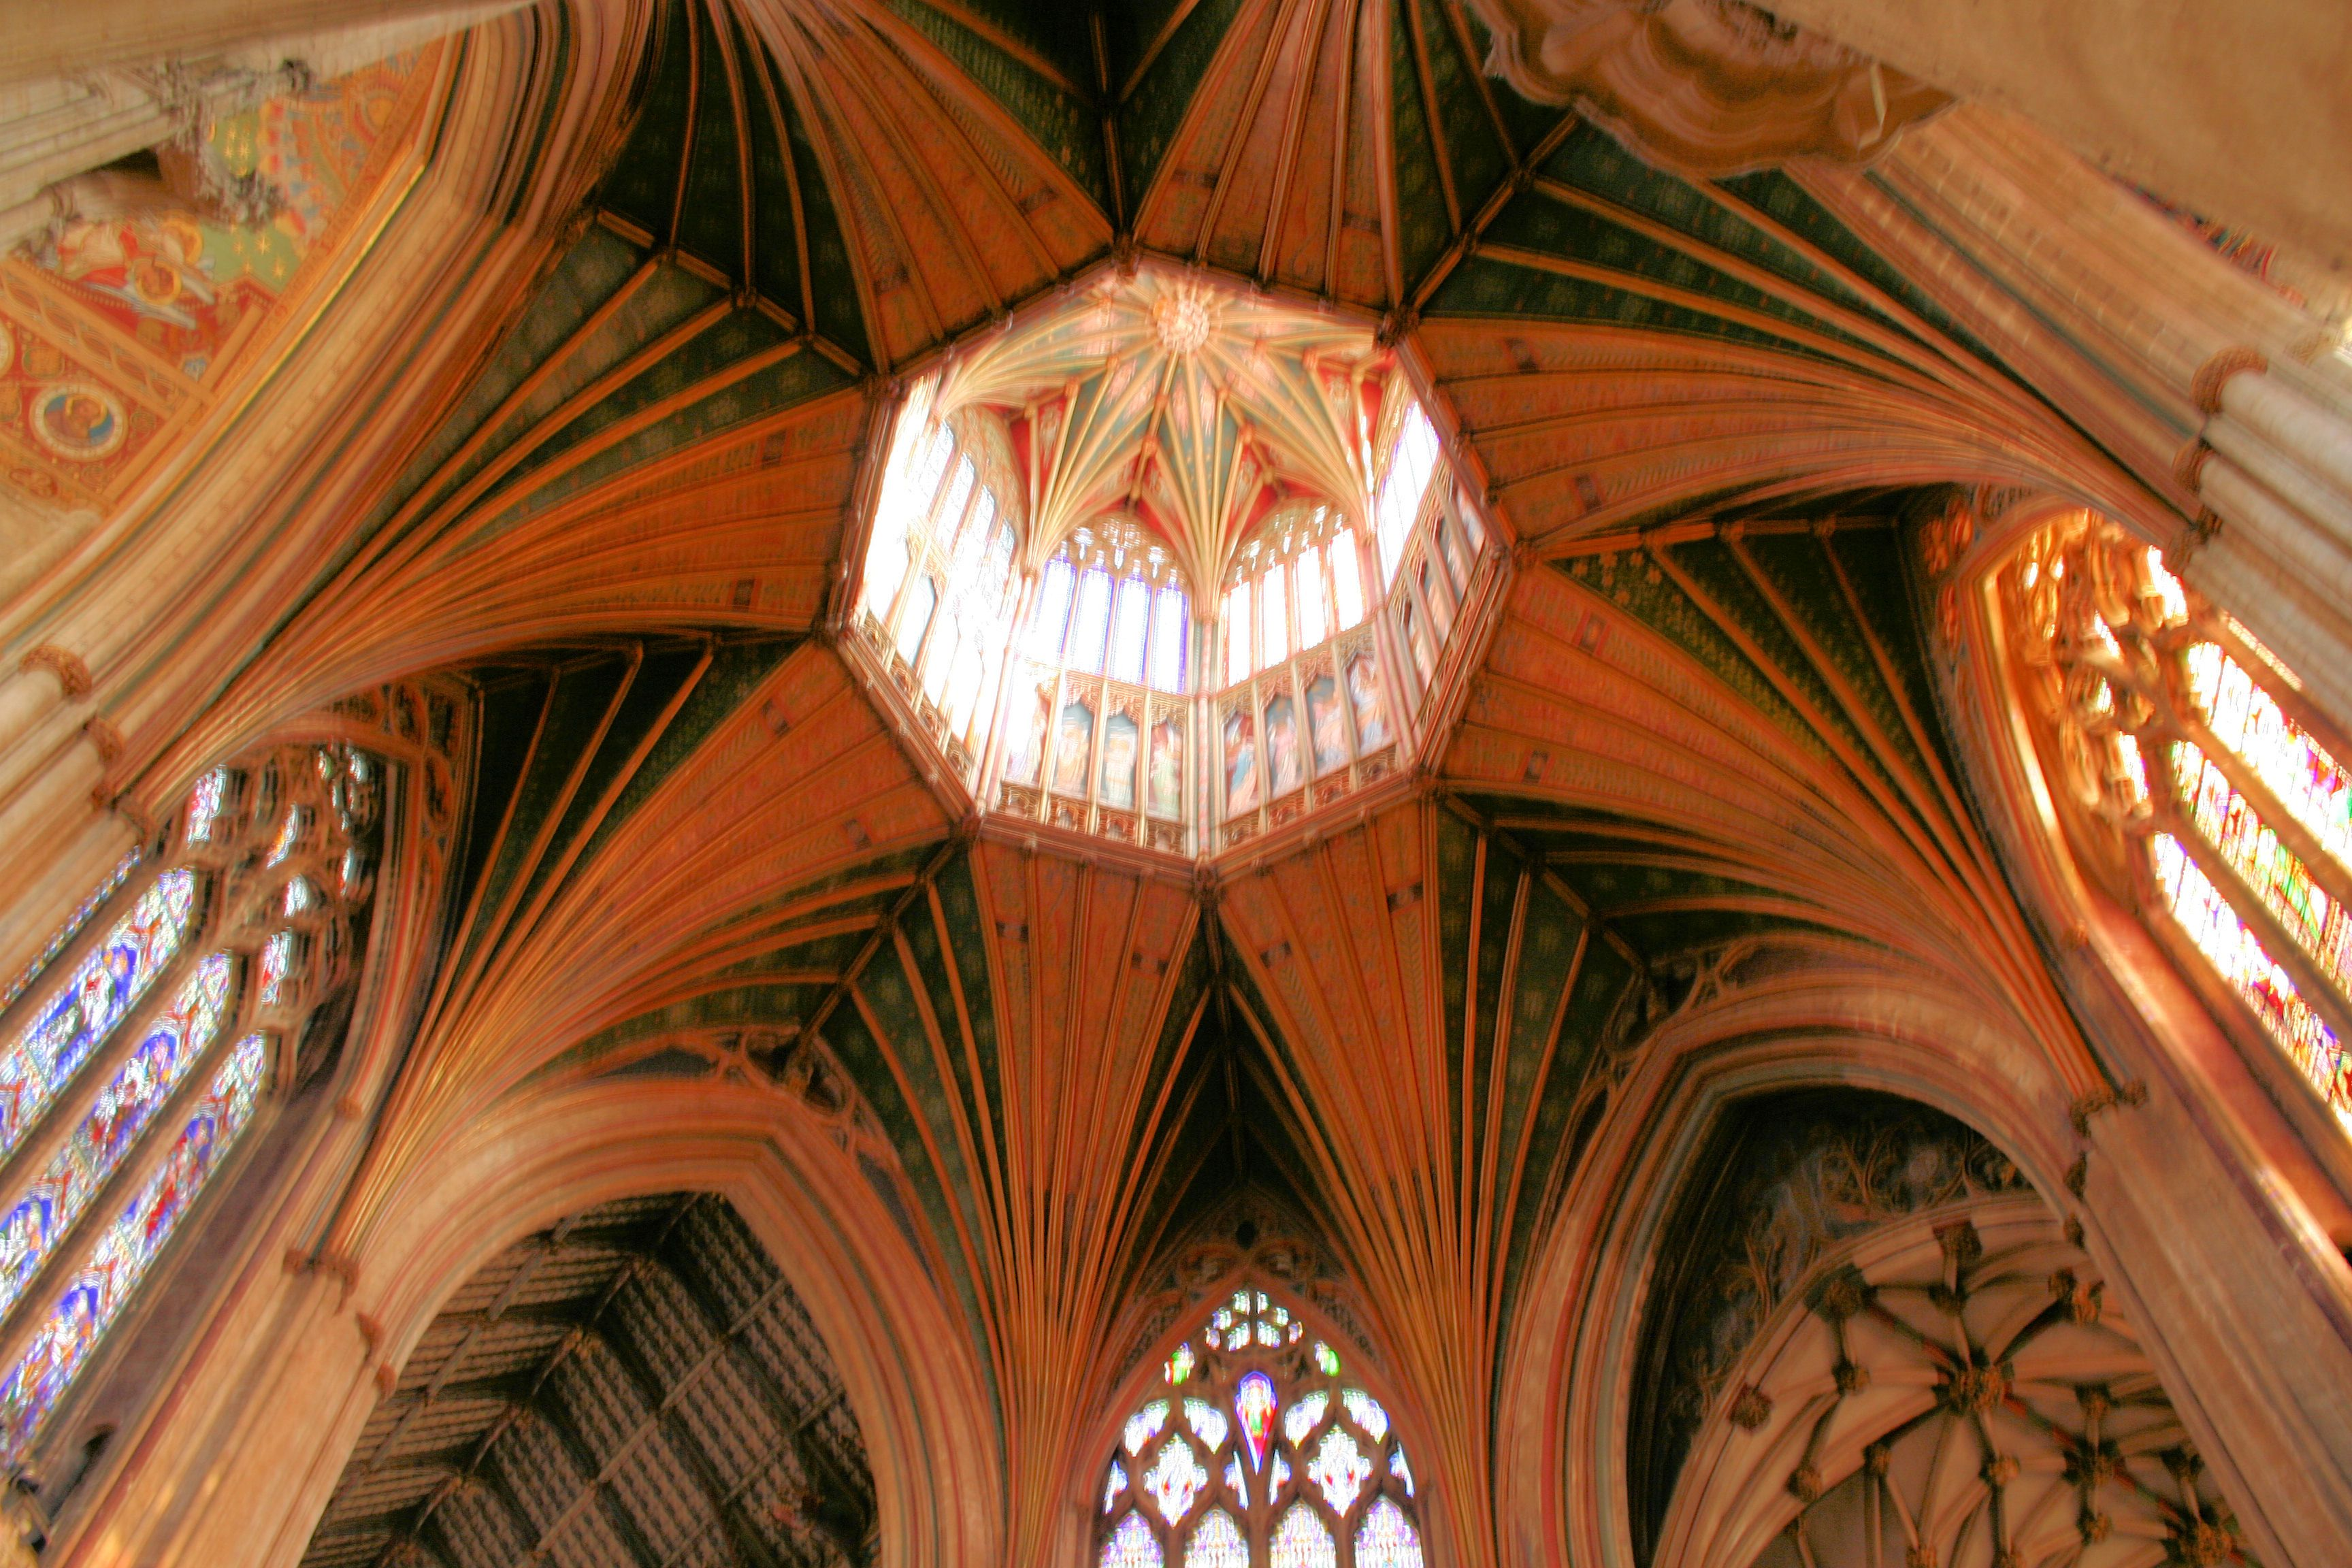 The Lantern at Ely Cathedral Elizabeth Goudge, Three Cities of Bells (Ely, Wells and Oxford)